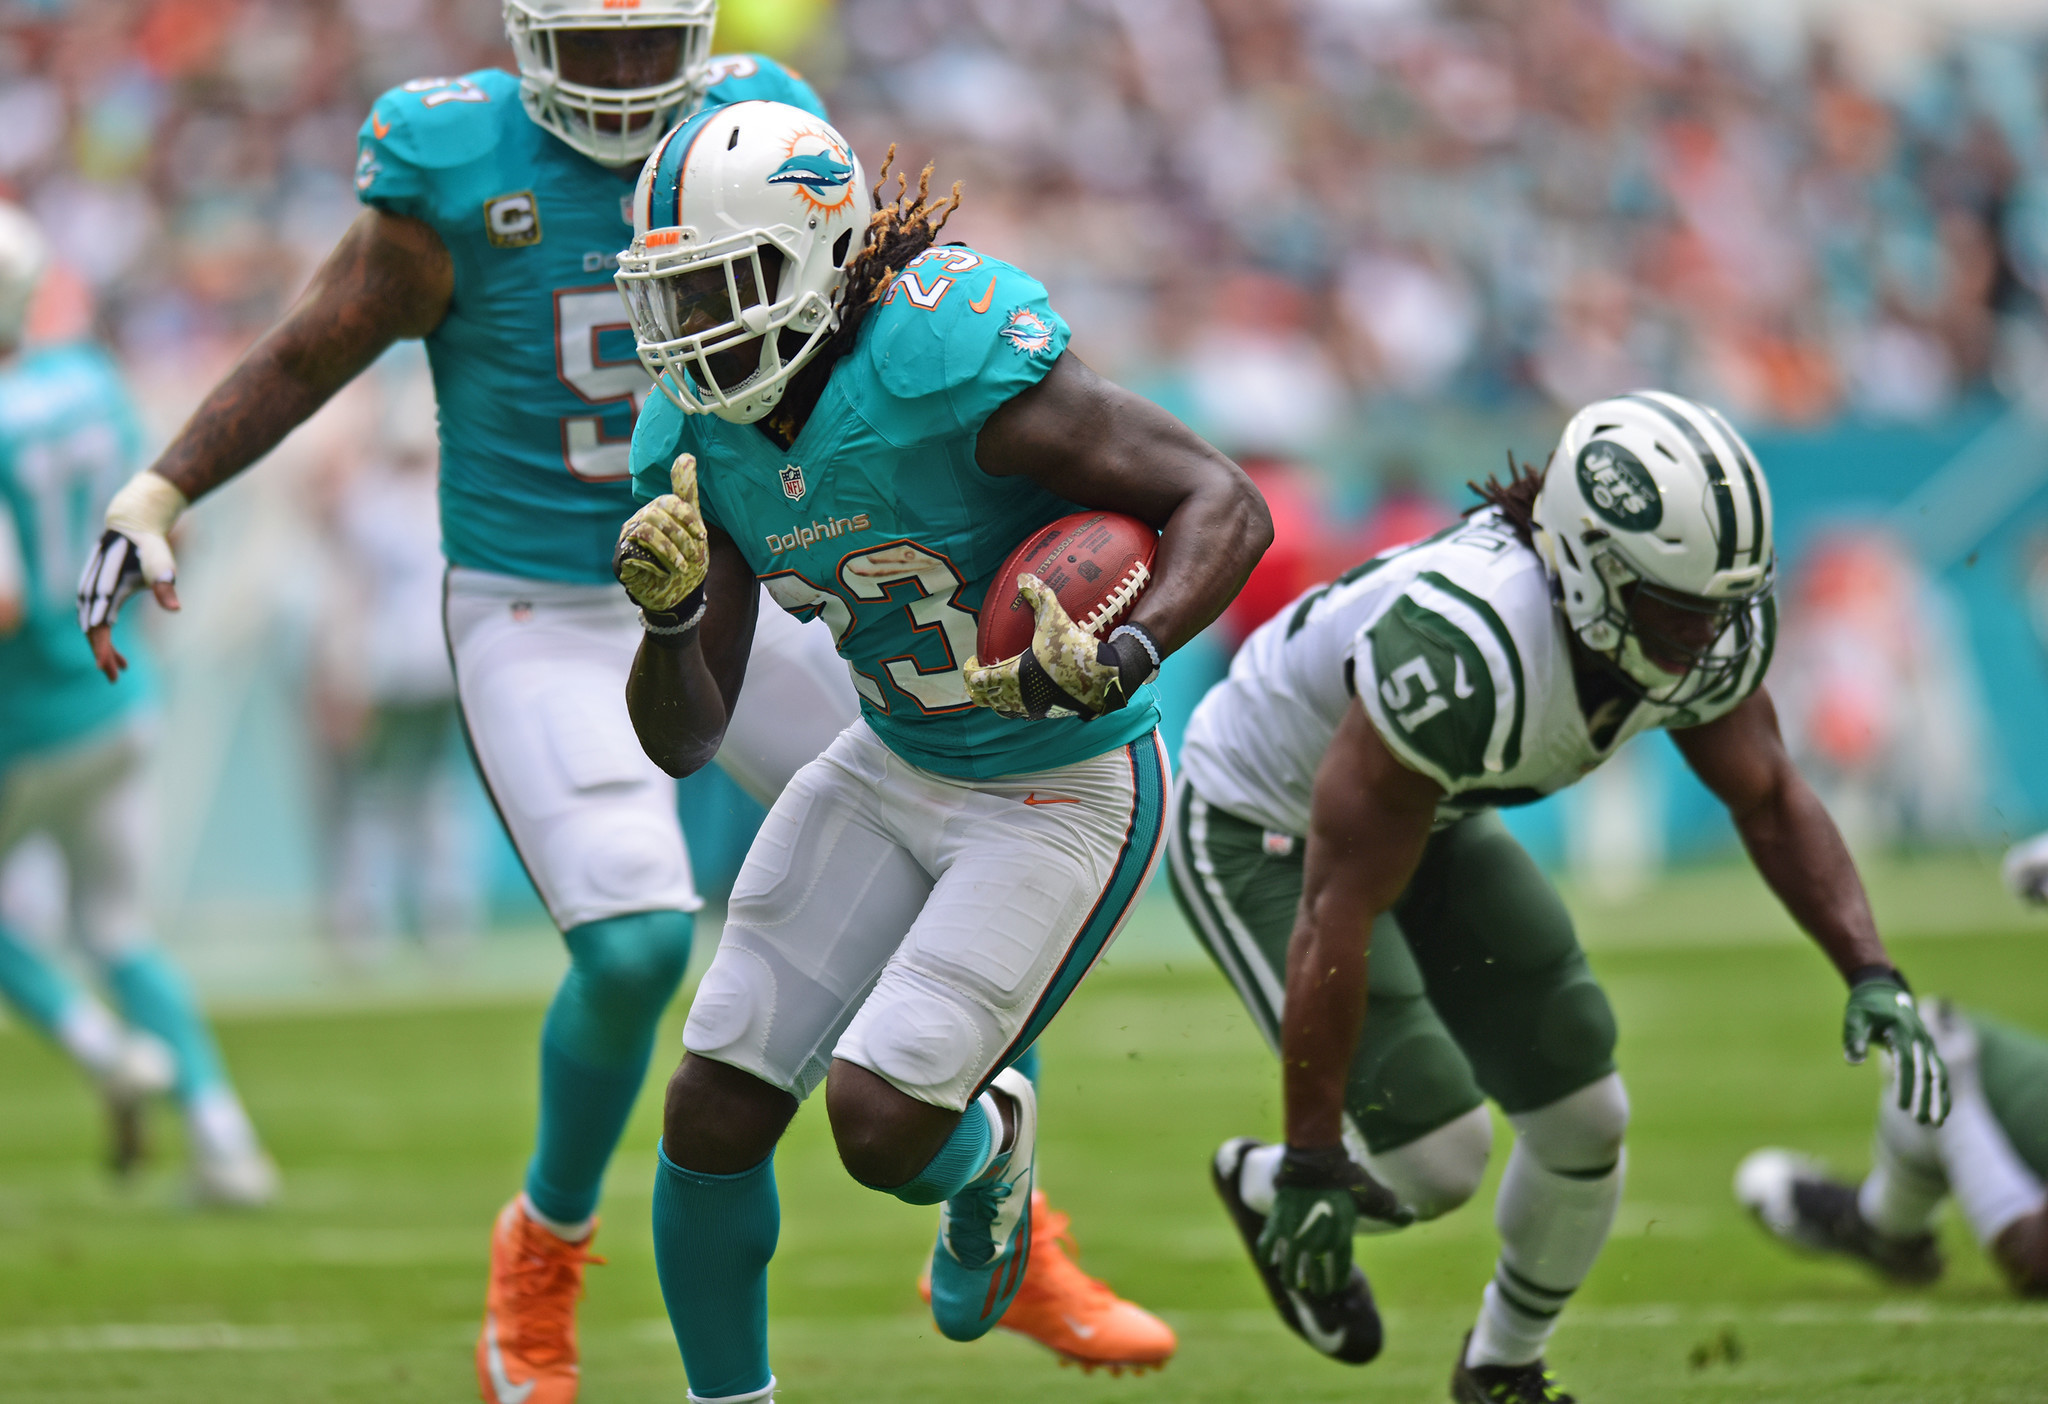 Jay Ajayi and Dolphins offensive line at their best in fourth